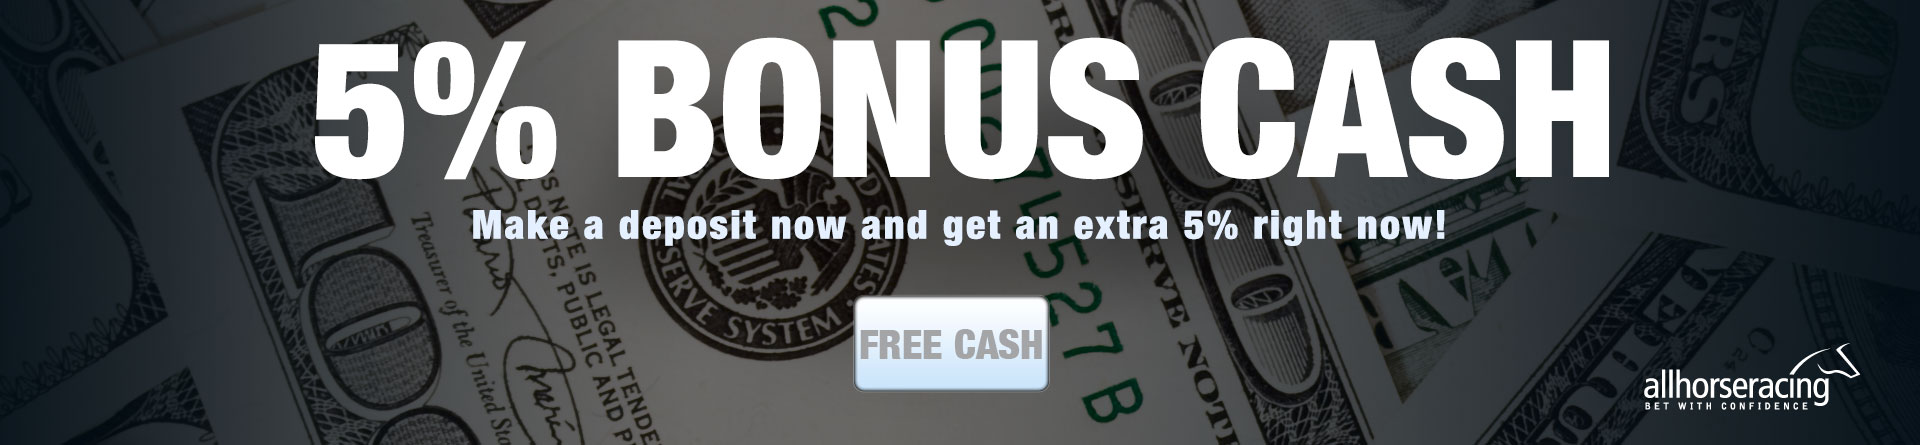 Get 5% Bonus Cash Back